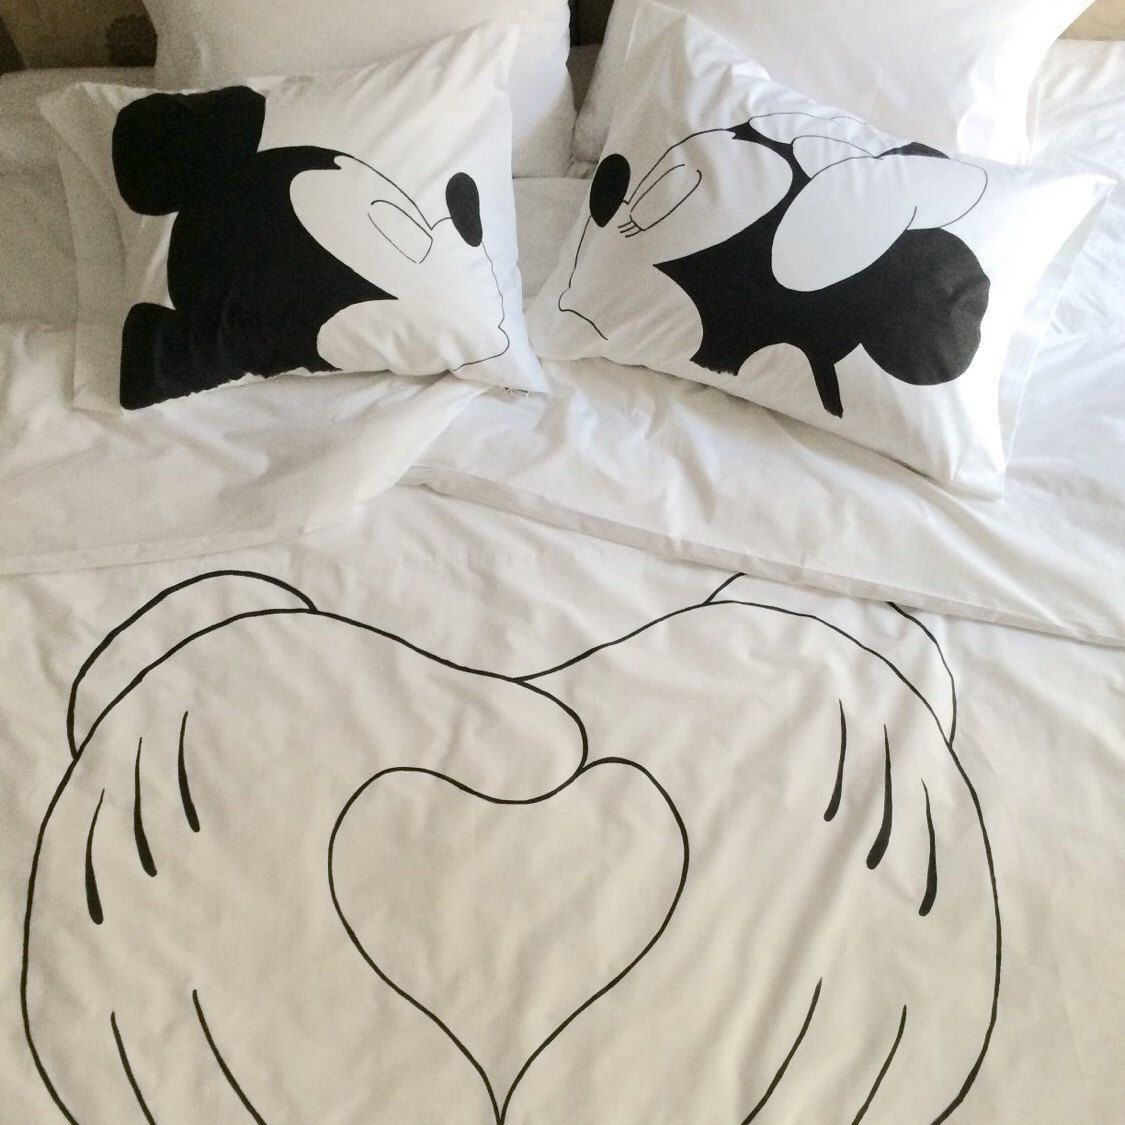 Hand Painted Disney Bedding Set, His and hers gifts, Duvet